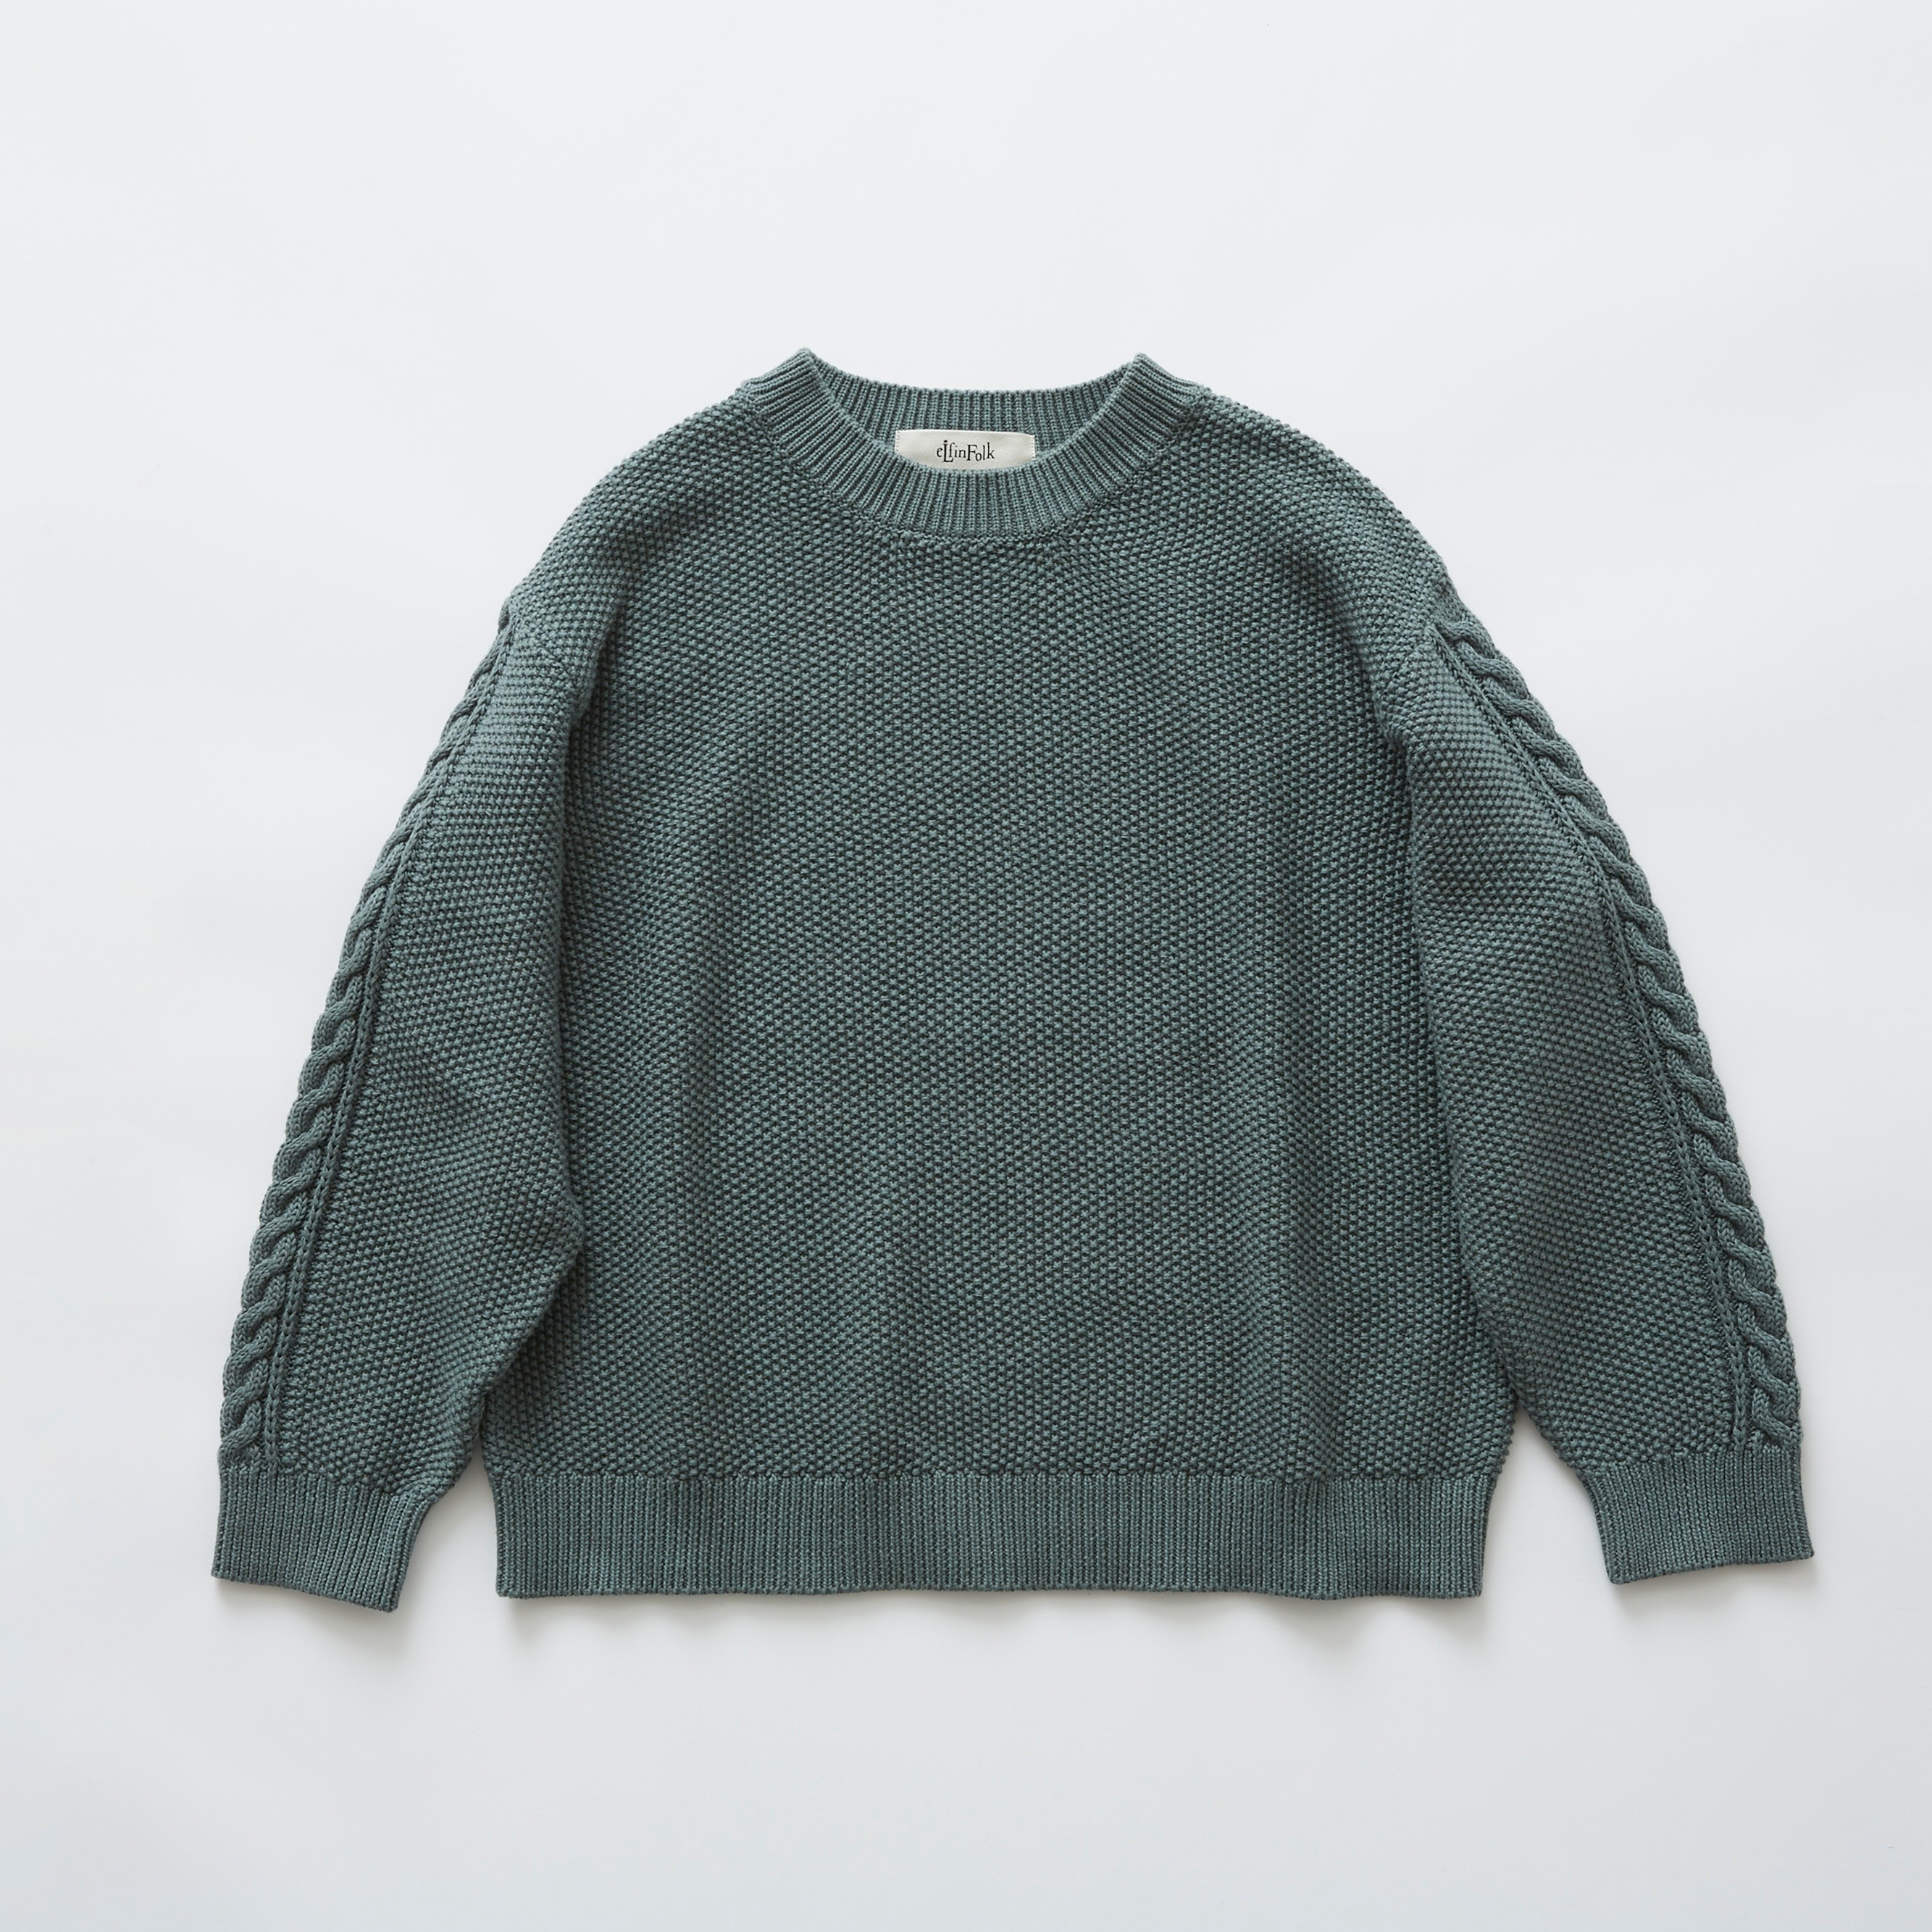 《eLfinFolk》moss stitch sweater / sage green / 110・130cm